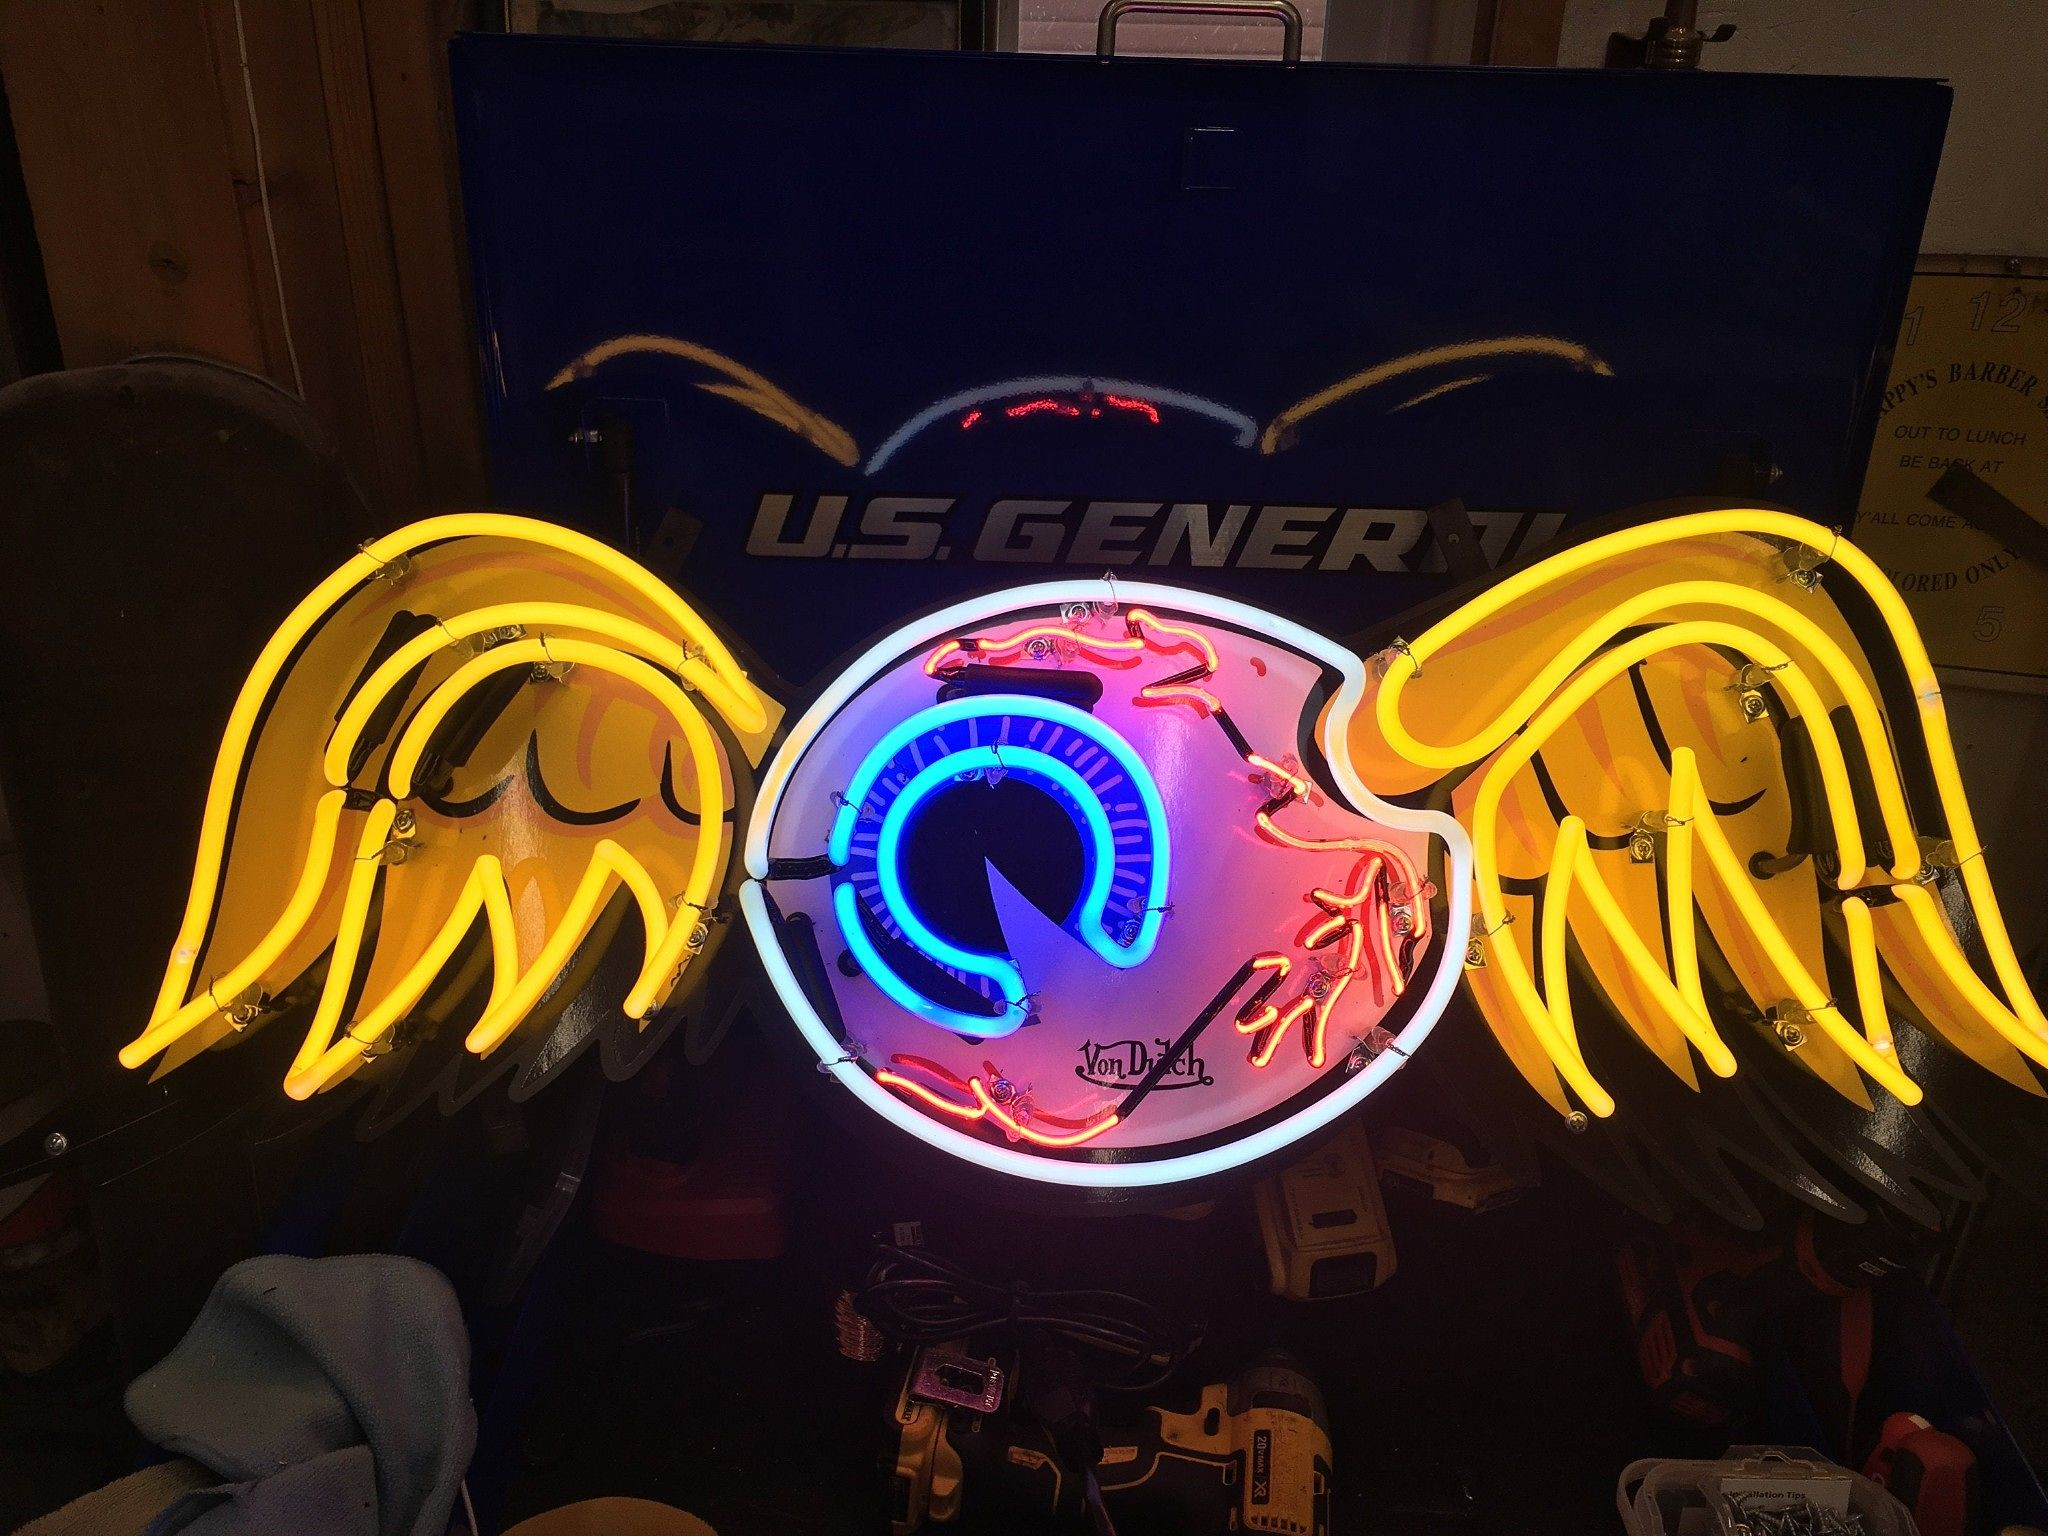 Flying Eyeball Sign Outdoor Garage Signs For Men Hot Rod Signs Man Cave Signs Gifts For Him Outdoor Garage Signs Motorcycle Sign